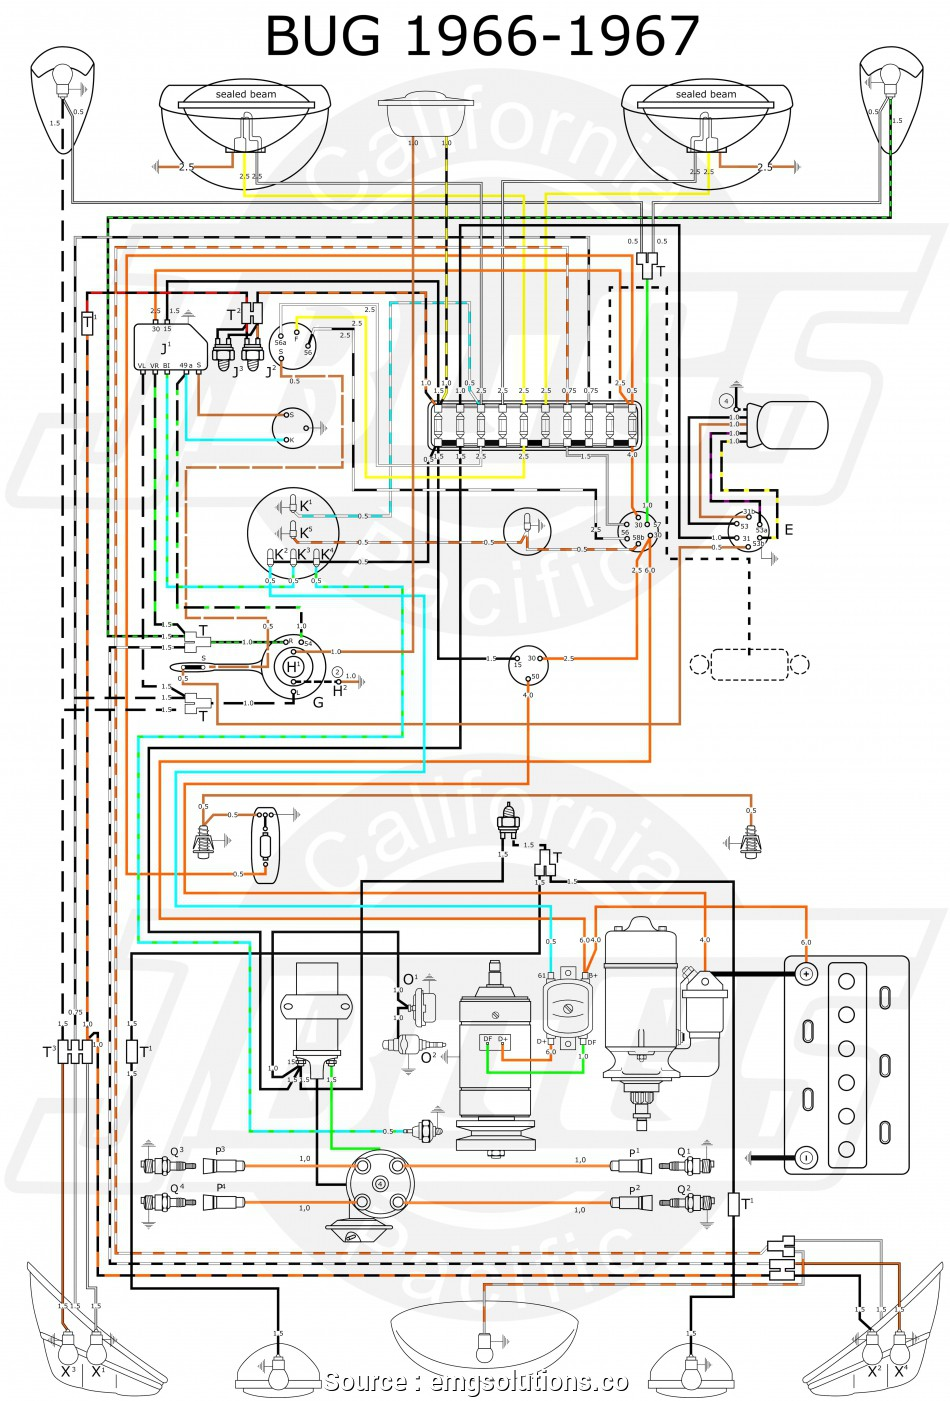 Diagram New Beetle Starter Wiring Diagram Full Version Hd Quality Wiring Diagram Xlcdwir012 Fanfaradilegnano It